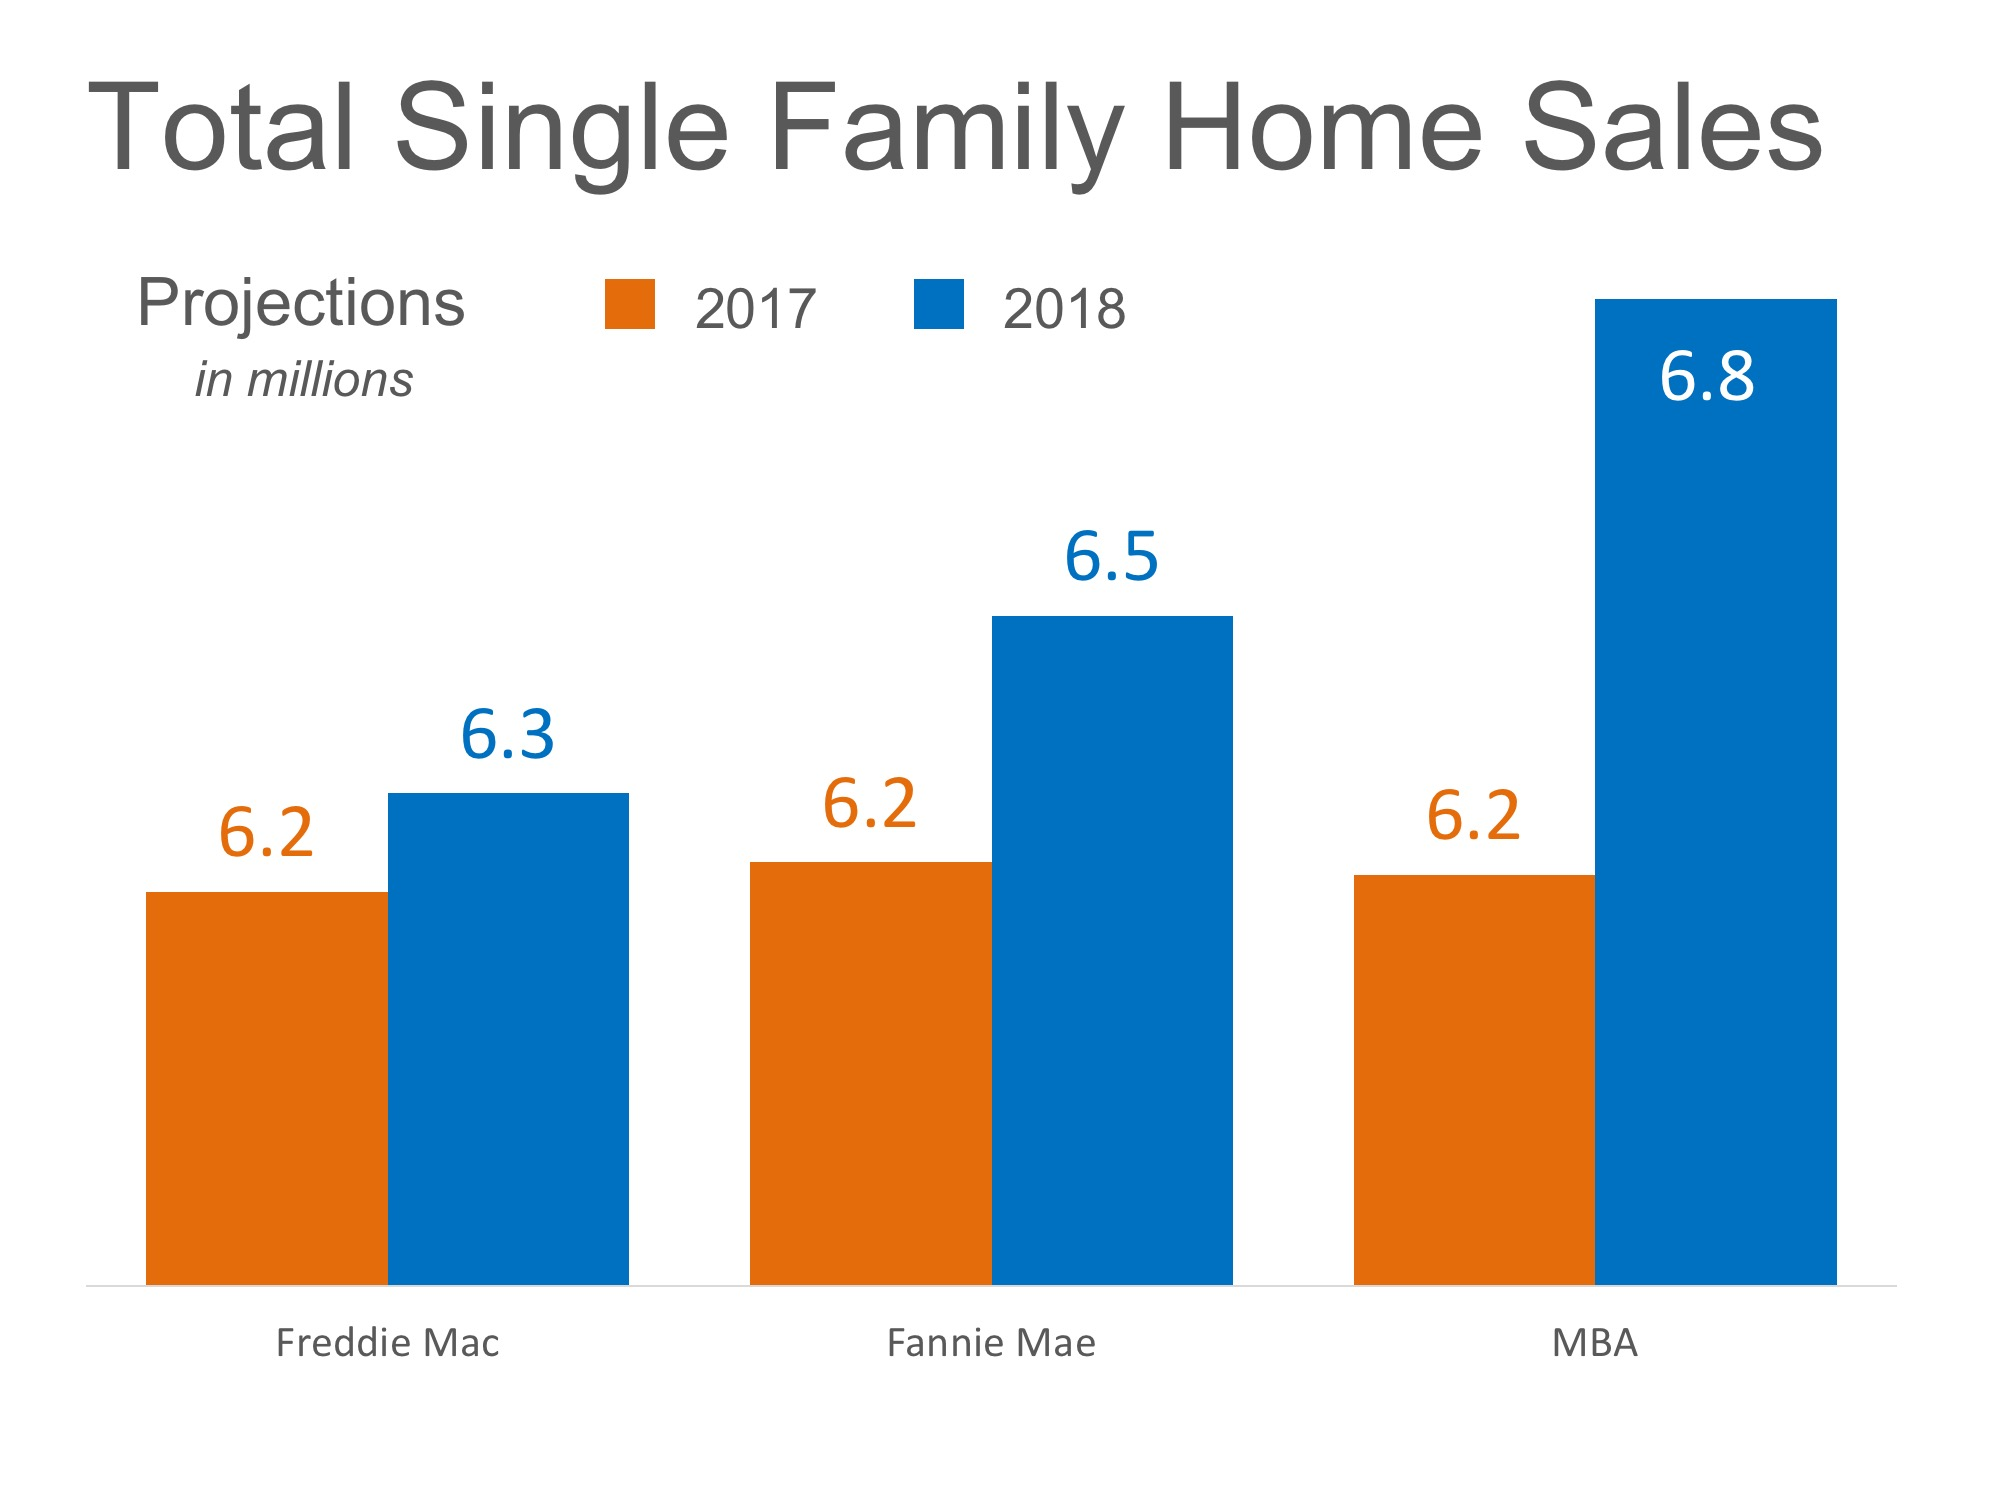 Zillow Nc Home Sales Expected To Increase Nicely In 2018 Sherwood